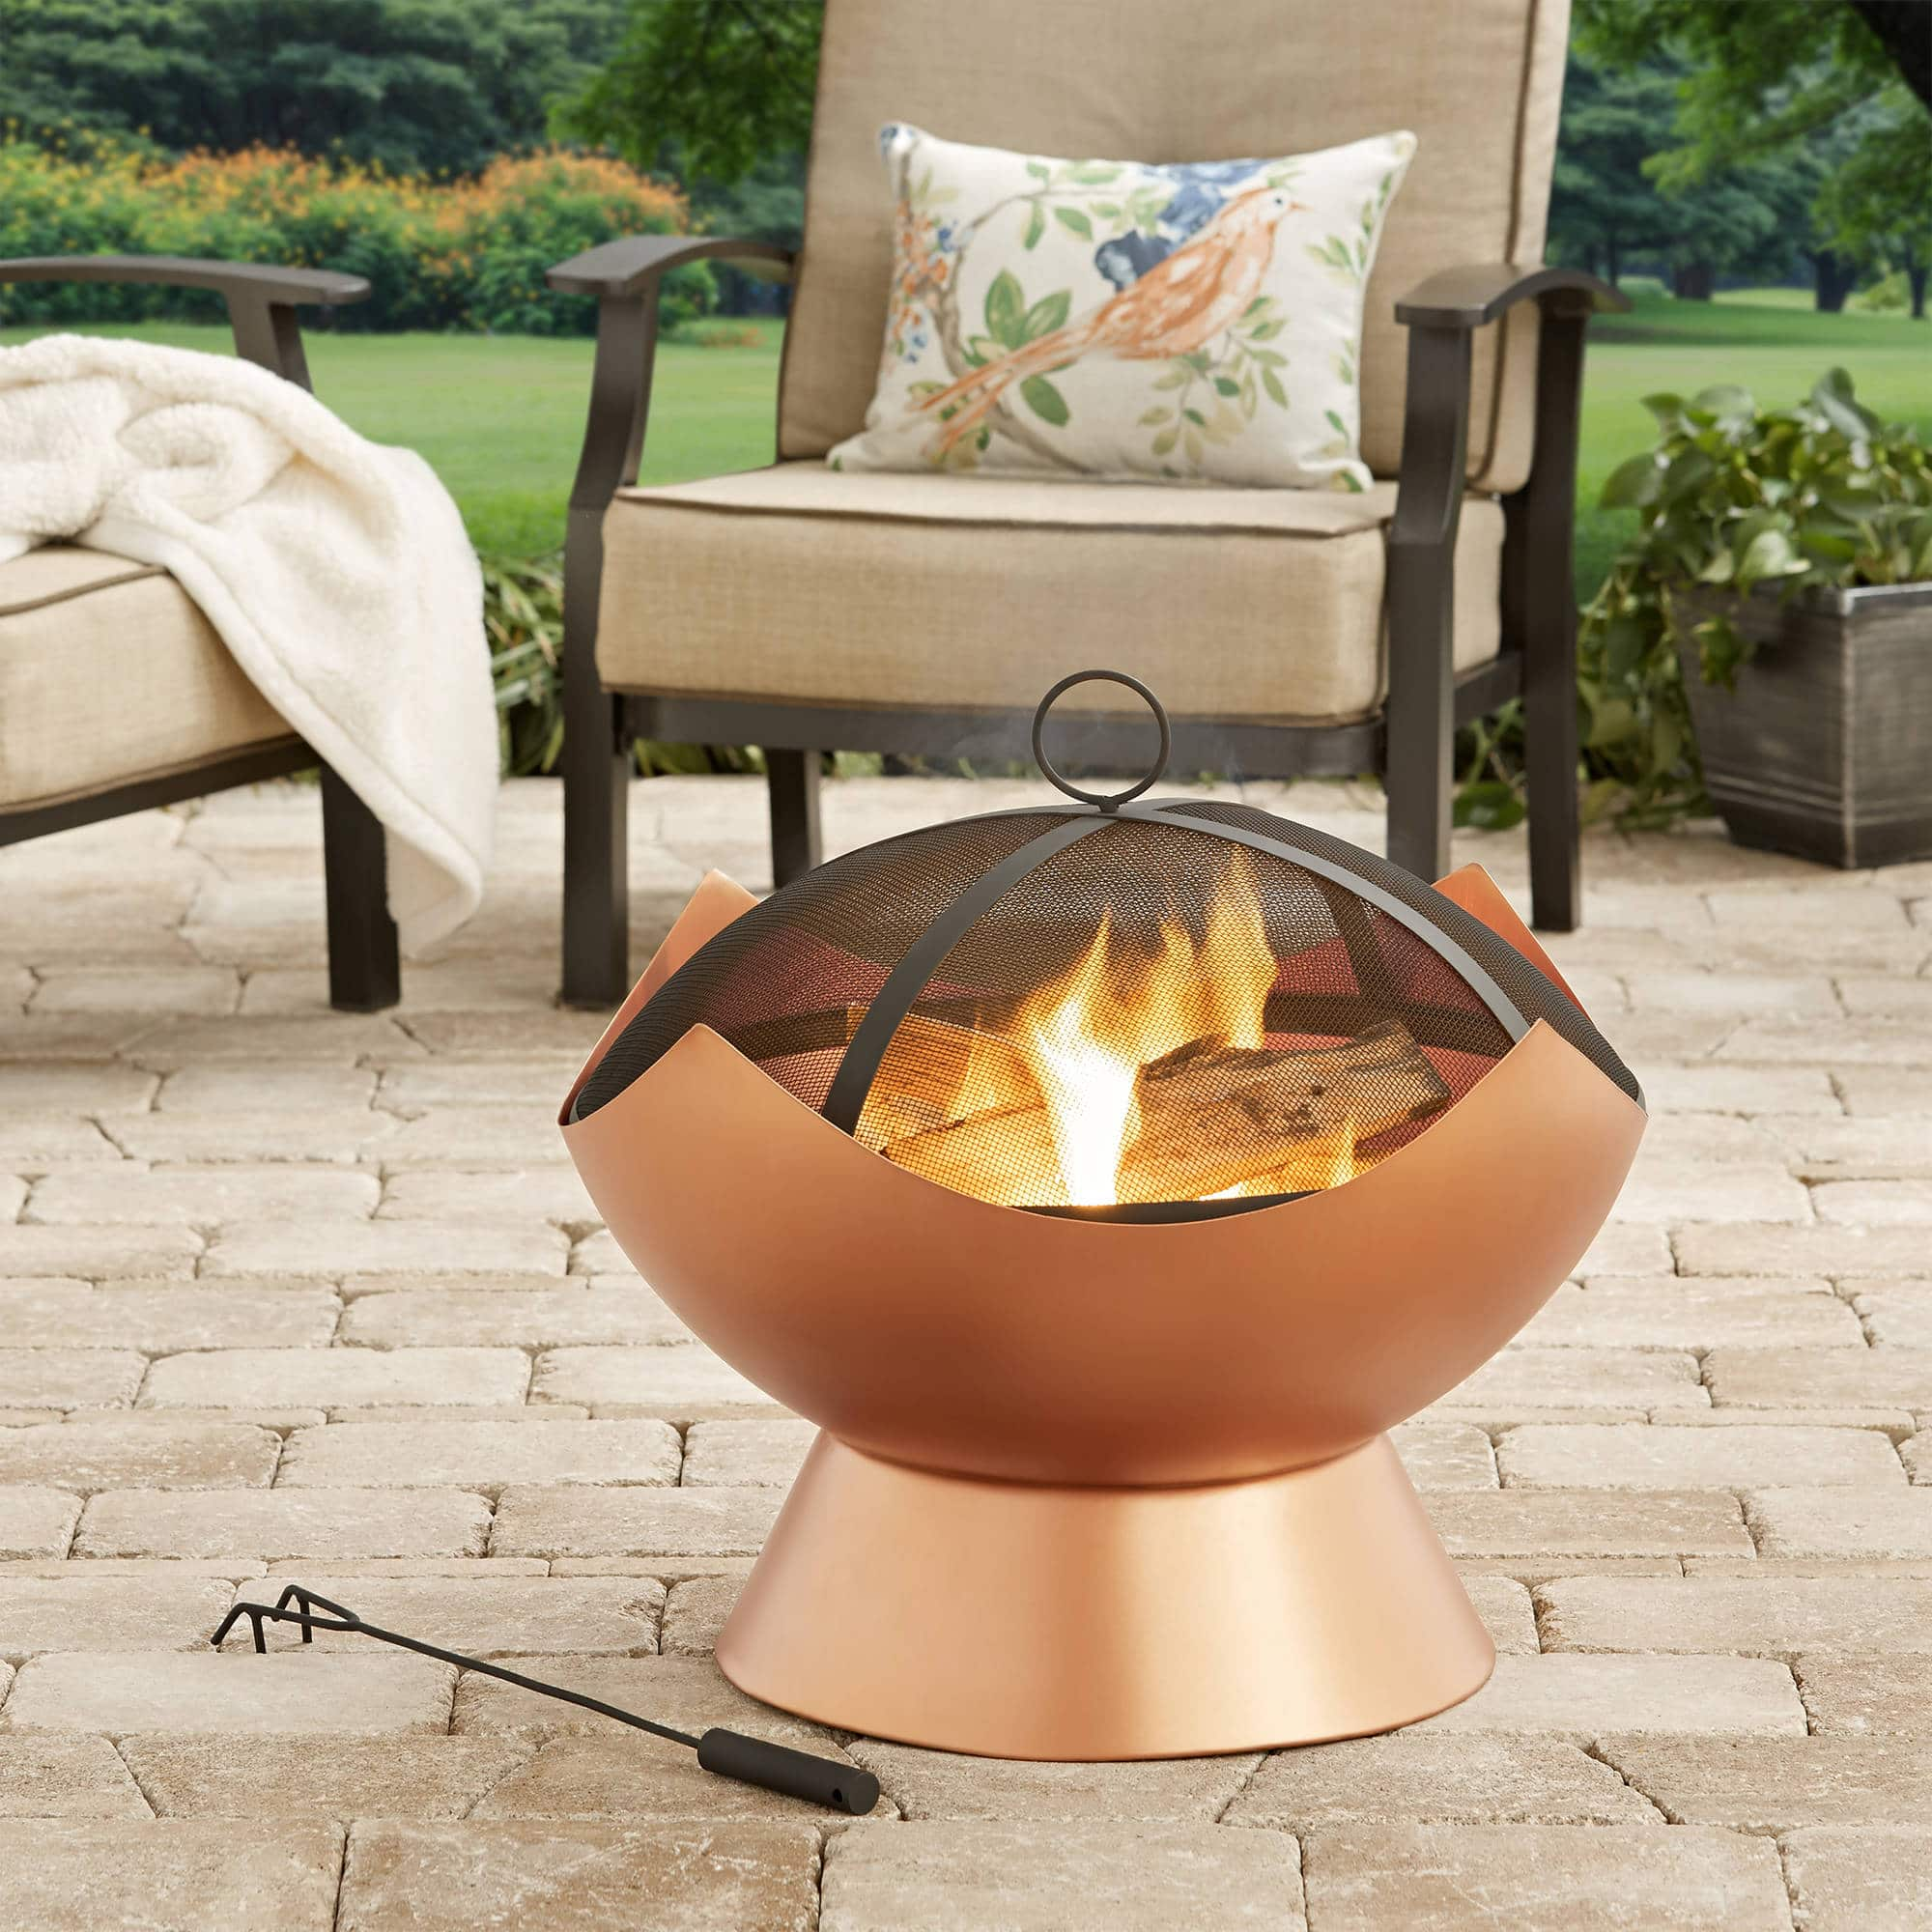 "Walmart 26"" Modern Copper Finish Wood-Burning Firebowl $38.43 FREE SHIPPING"